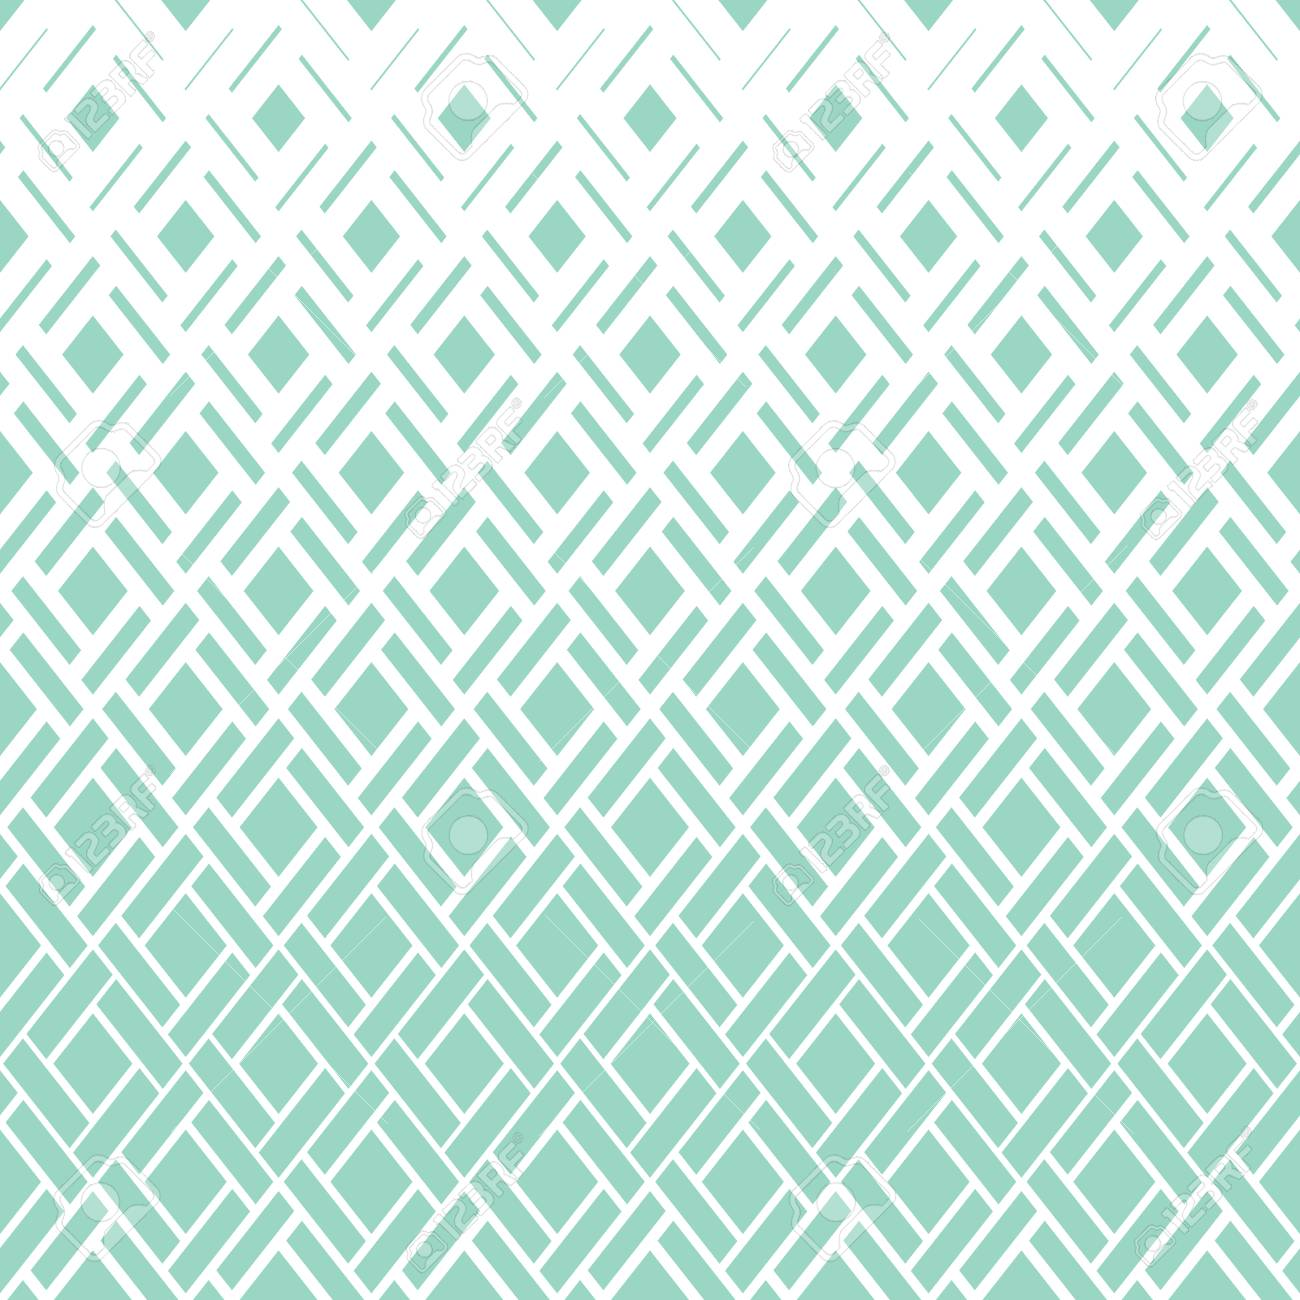 Abstract geometric pattern  Vector background  White and green